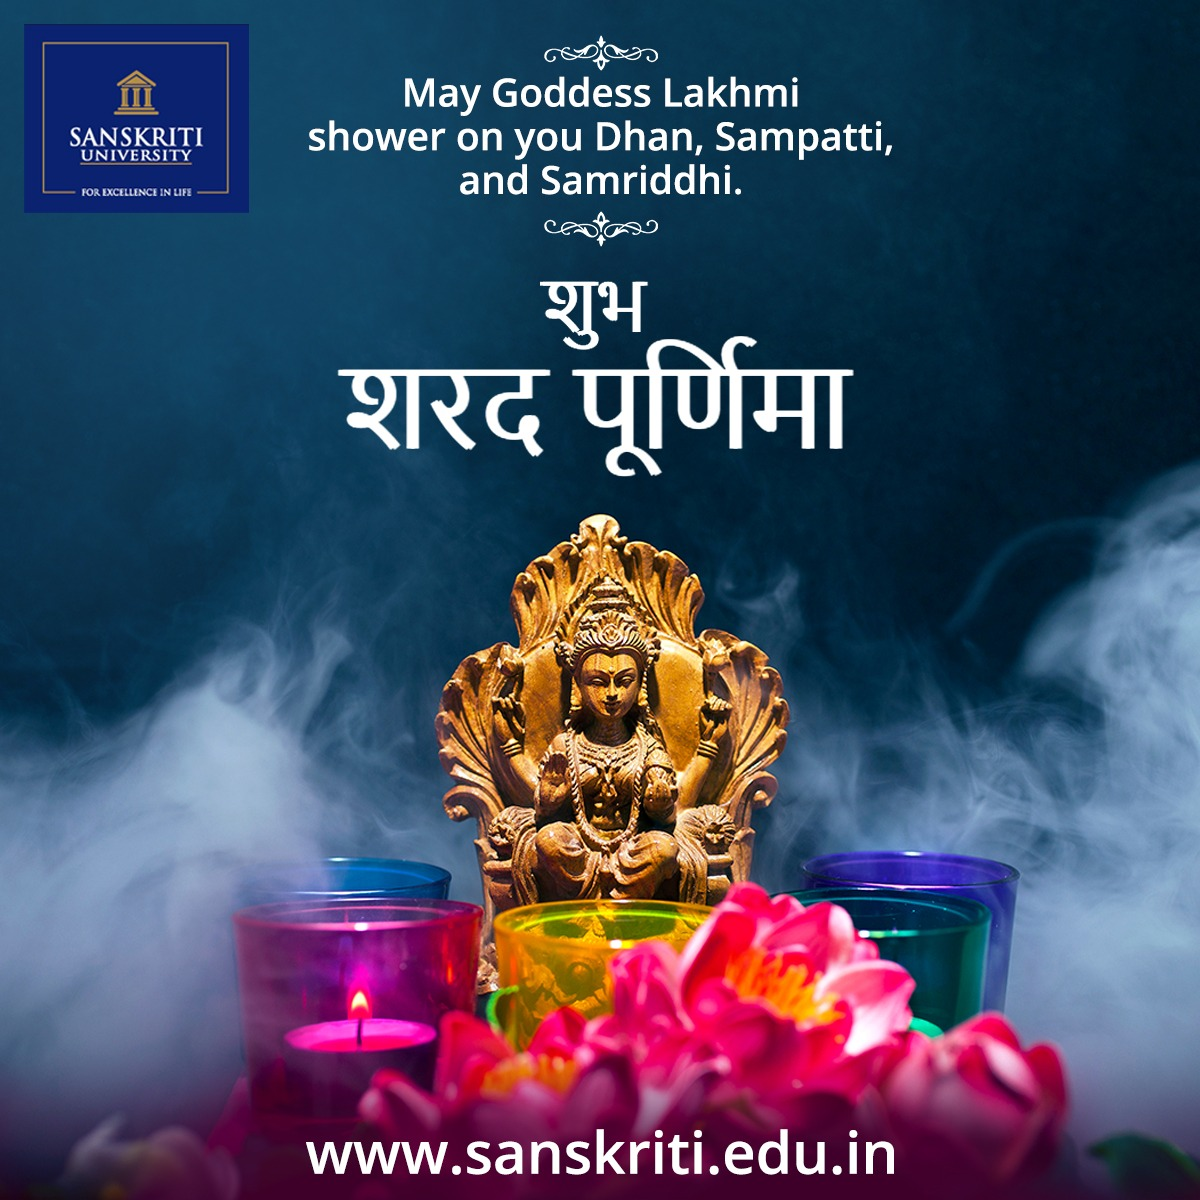 https://t.co/l75Ayqoeog  Hope this auspicious festival brings happiness and merriment to all of you, may Goddess Lakshmi bless with good fortune and happiness! Happy Sharad Purnima.  #SanskritiUniversity #SharadPurnima #FestivalsofIndia #Mathura #Purnima https://t.co/VyiRM21Qgf